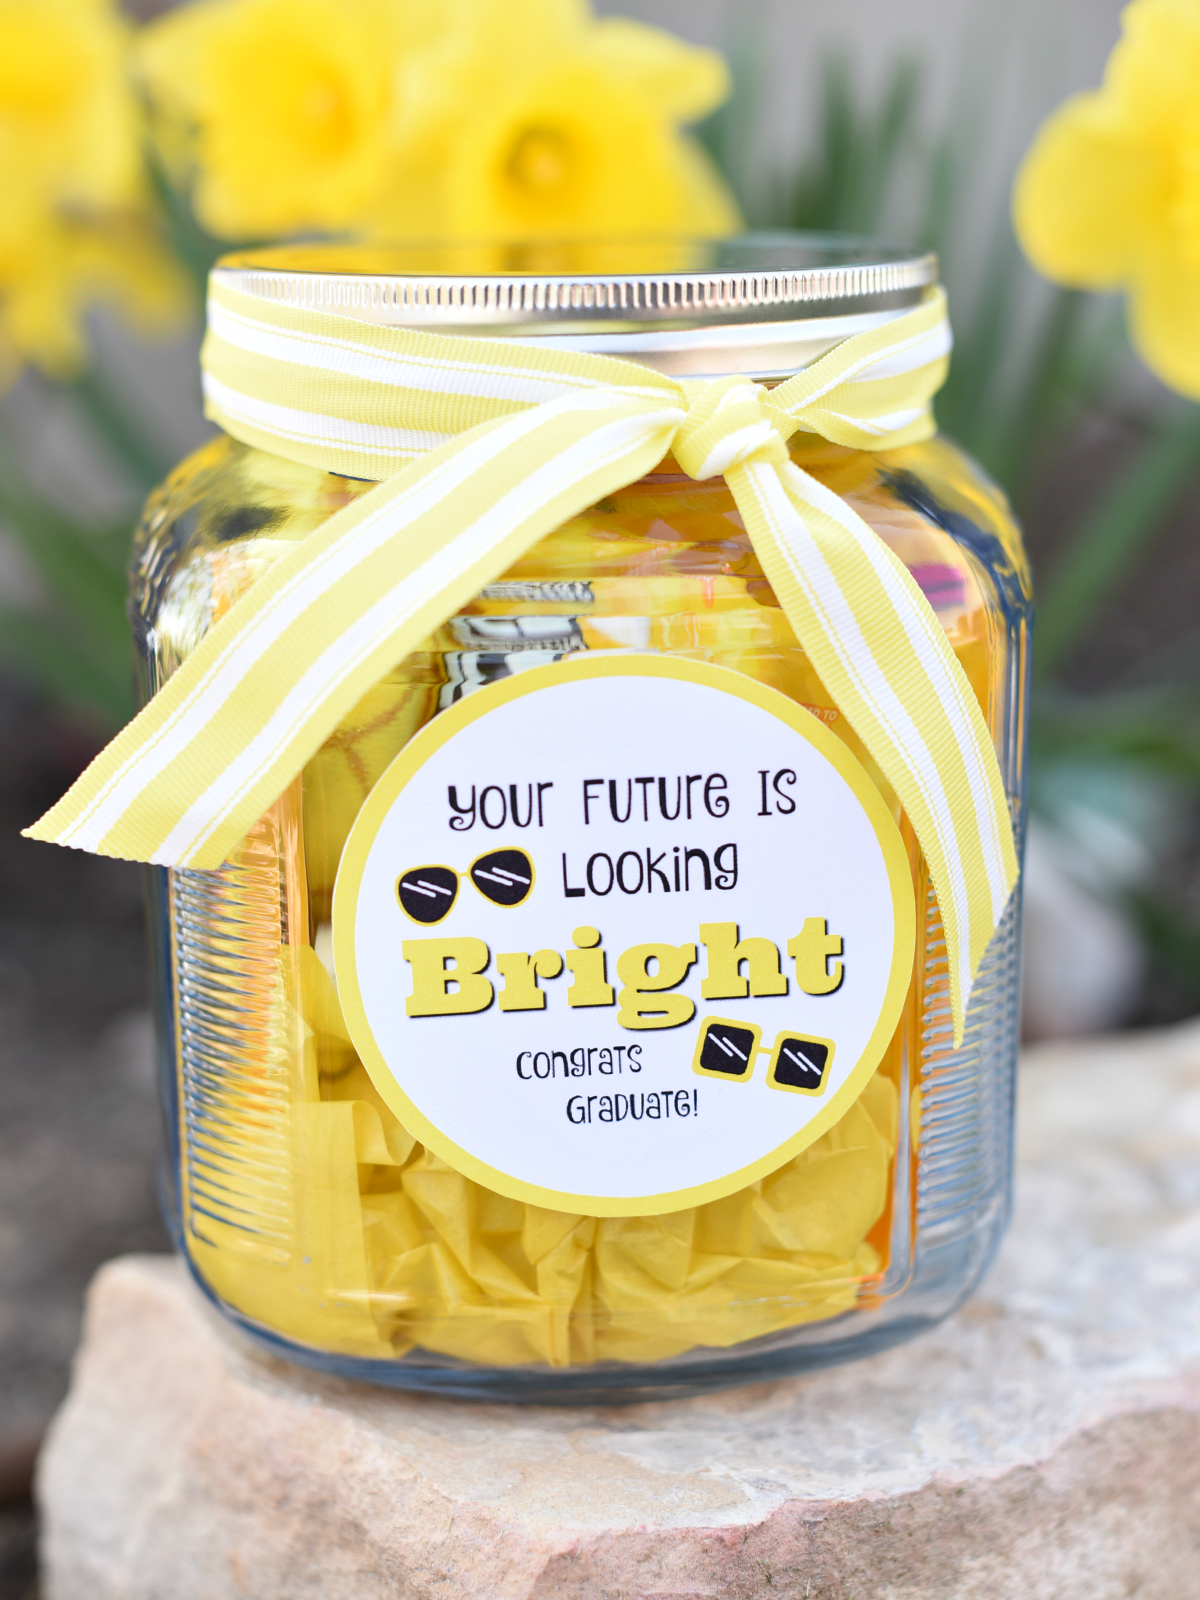 Graduation Present Ideas. This is a fun and simple graduation gift idea any graduate will love.